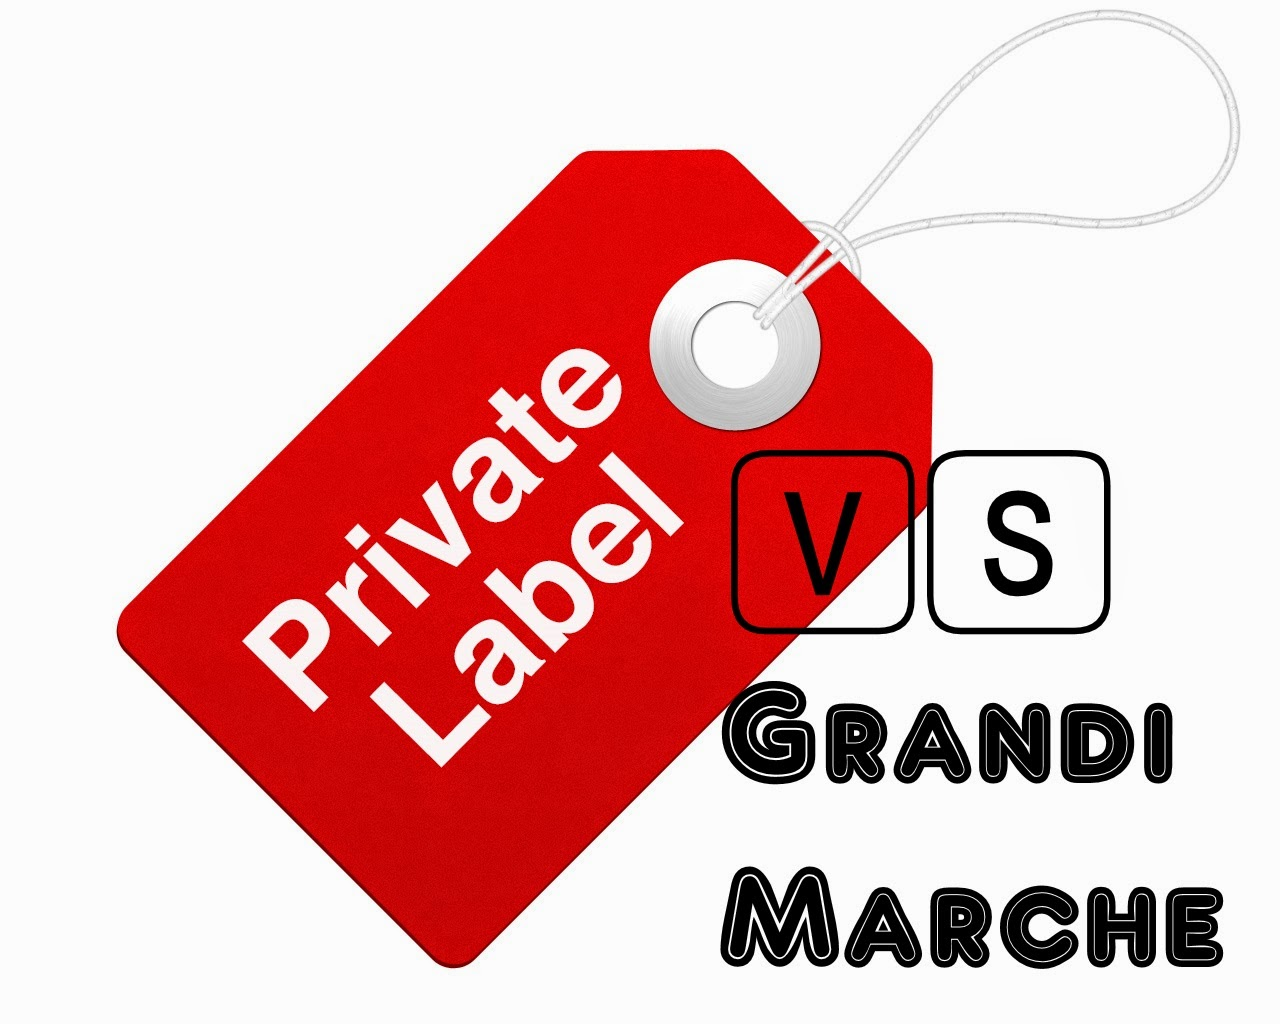 Private Label vs Grandi Marche